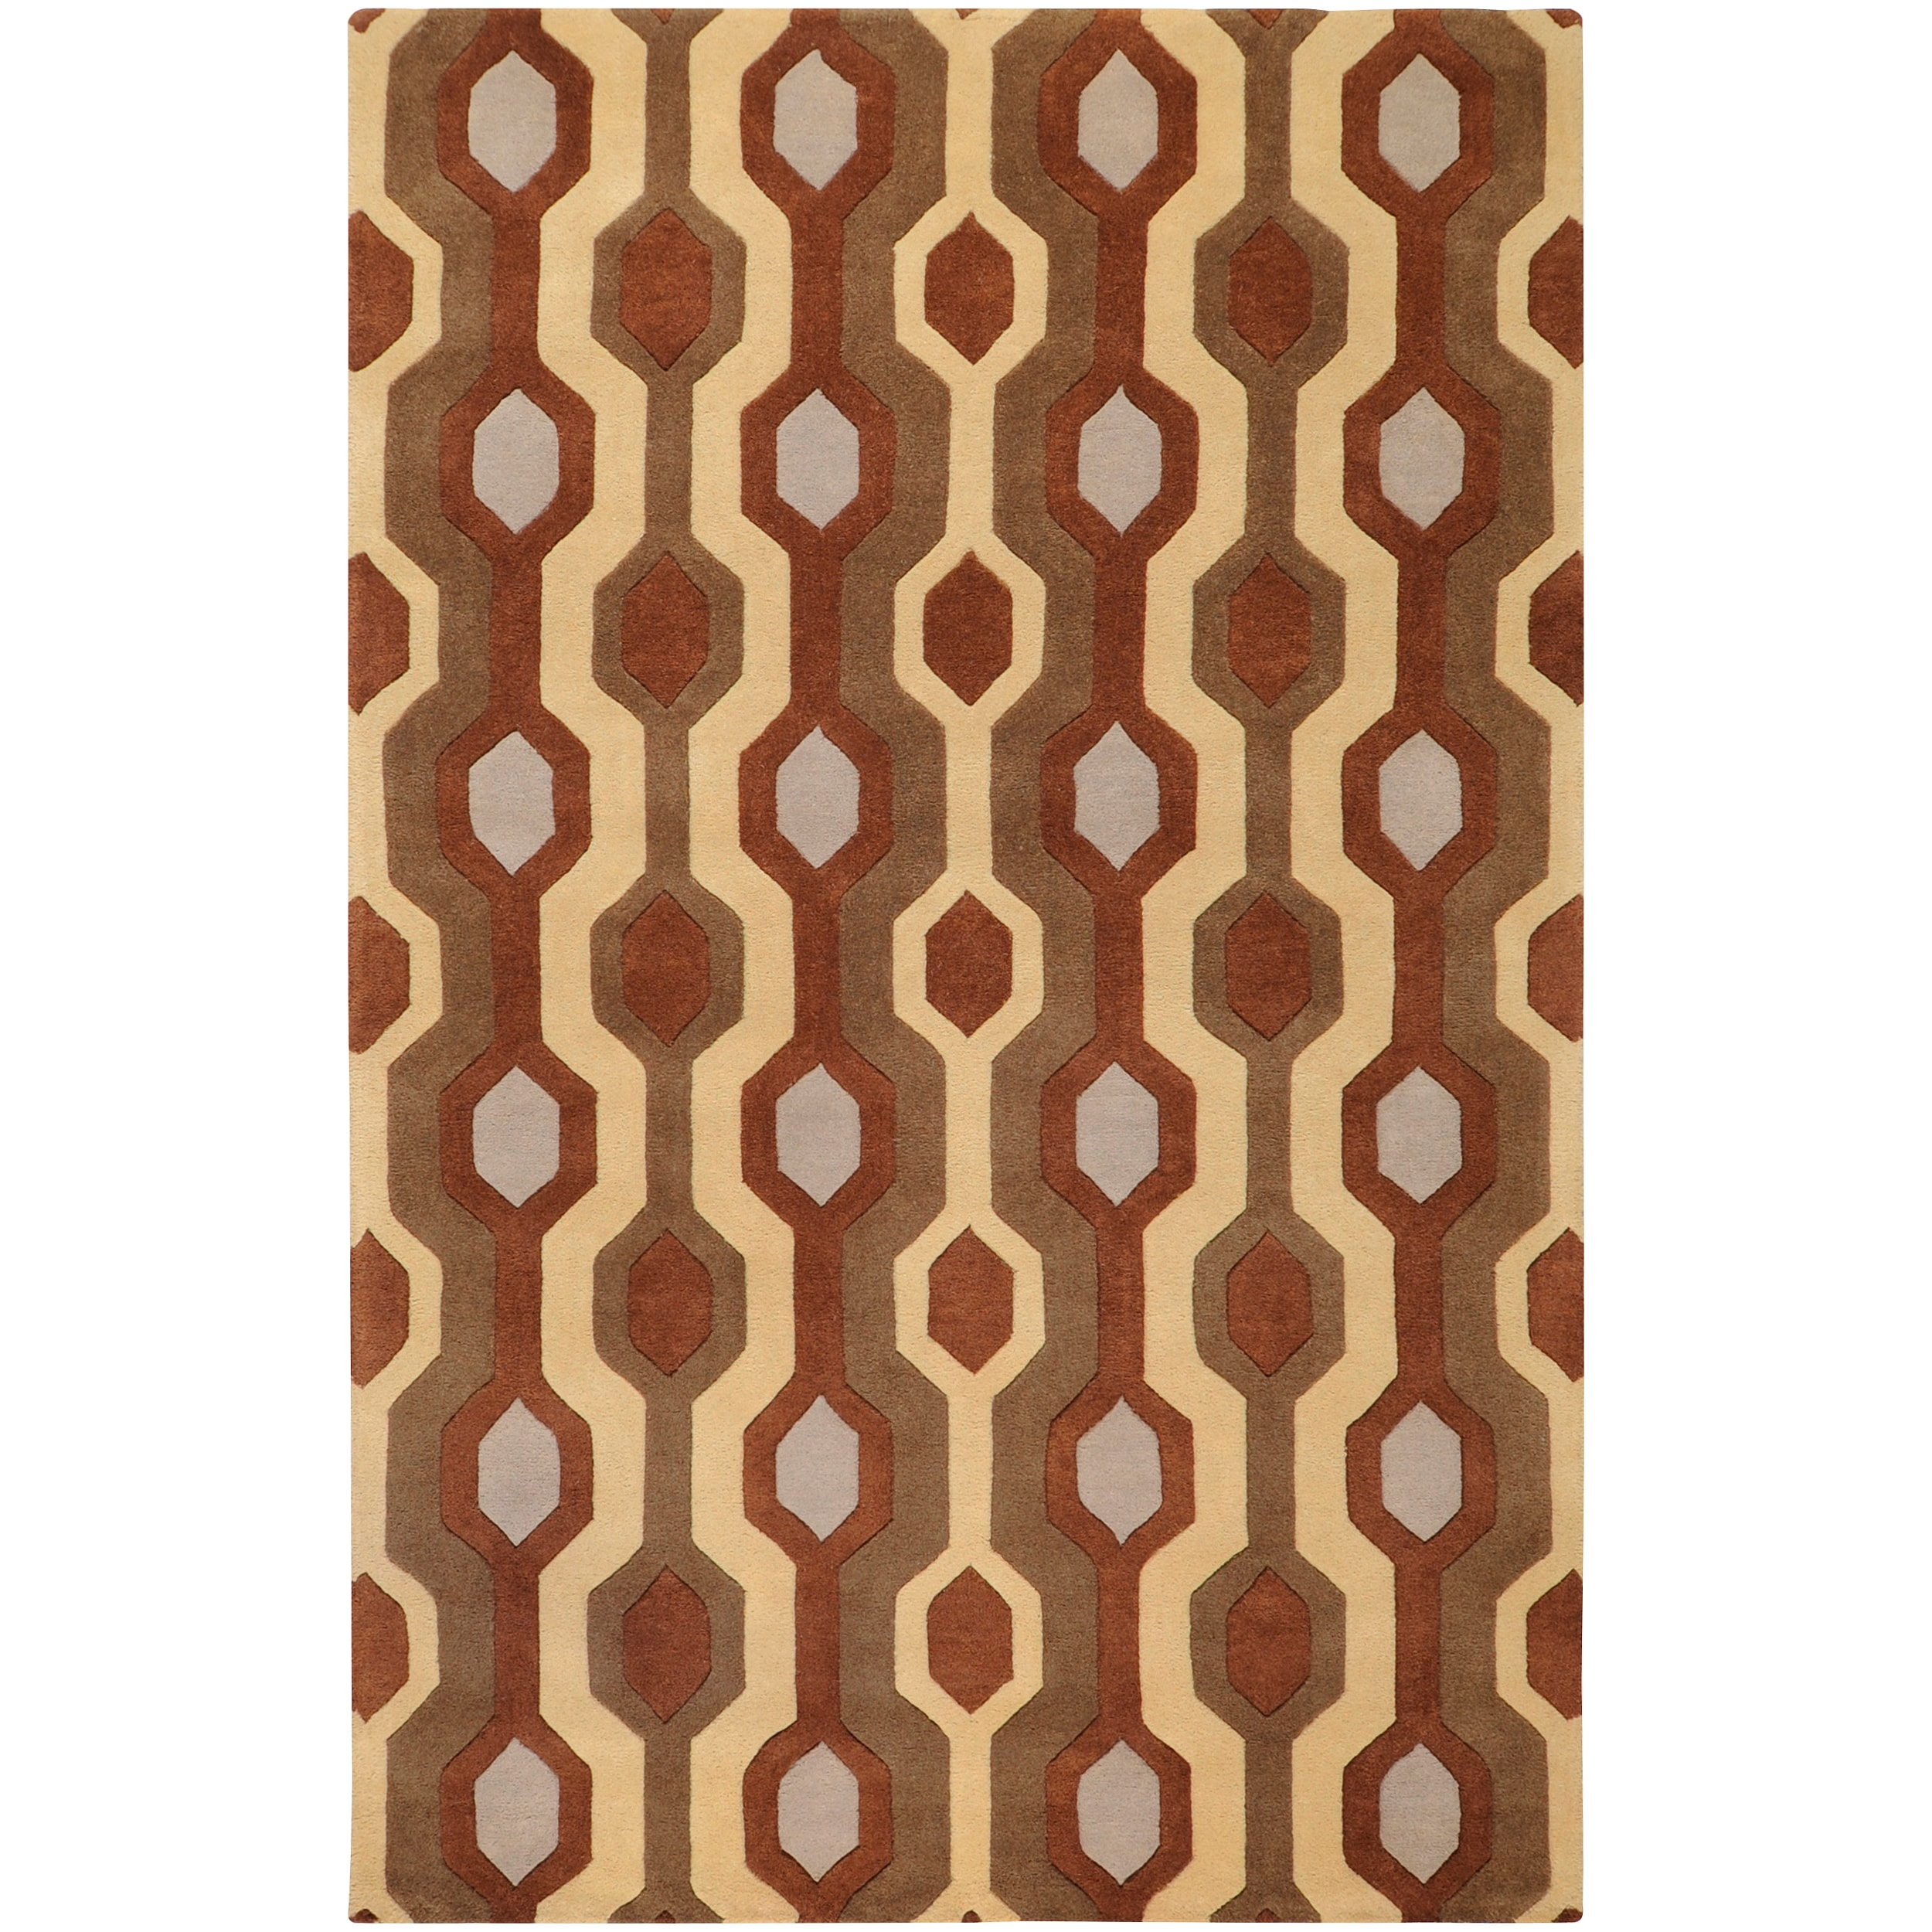 Hand-tufted Brown Contemporary Breaux Wool Geometric Rug (7'6 x 9'6)